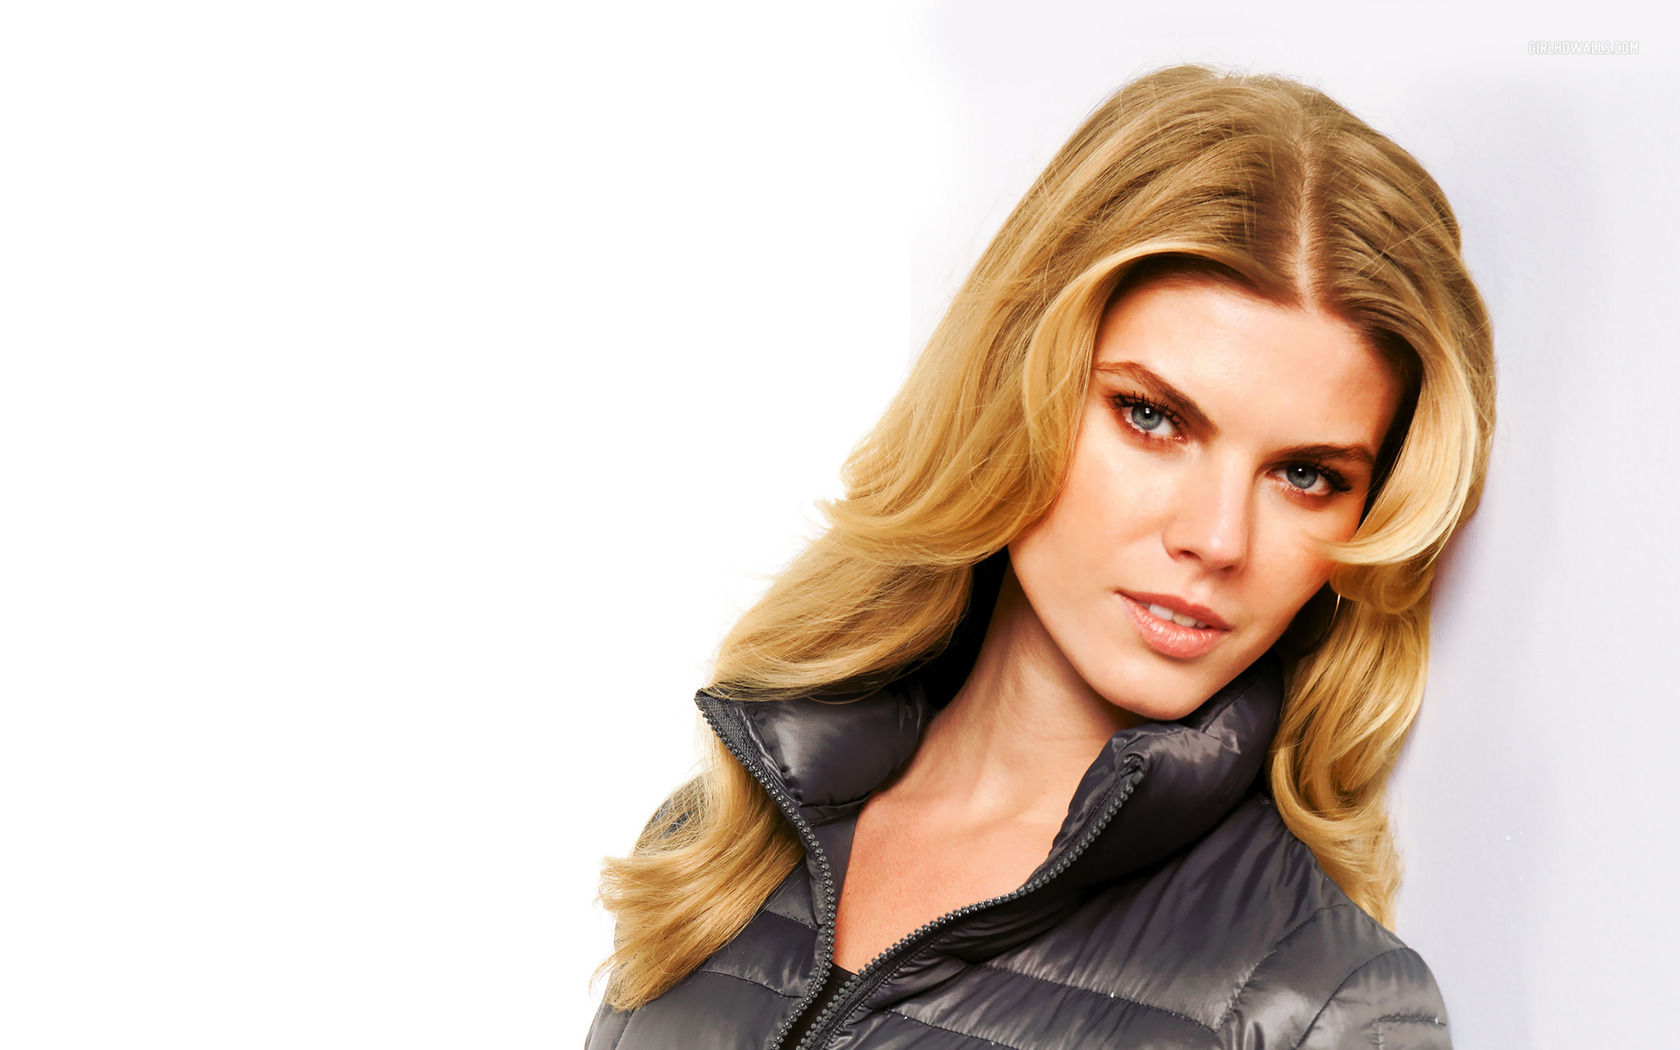 ... Maryna Linchuk wallpaper 1680x1050 ...